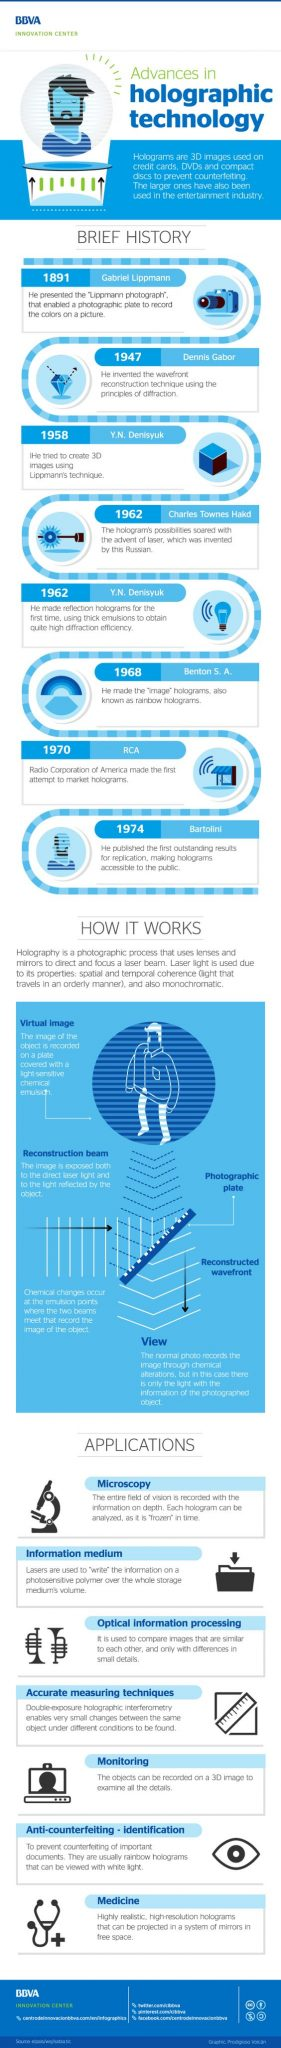 Advances In Holographic - Infographic